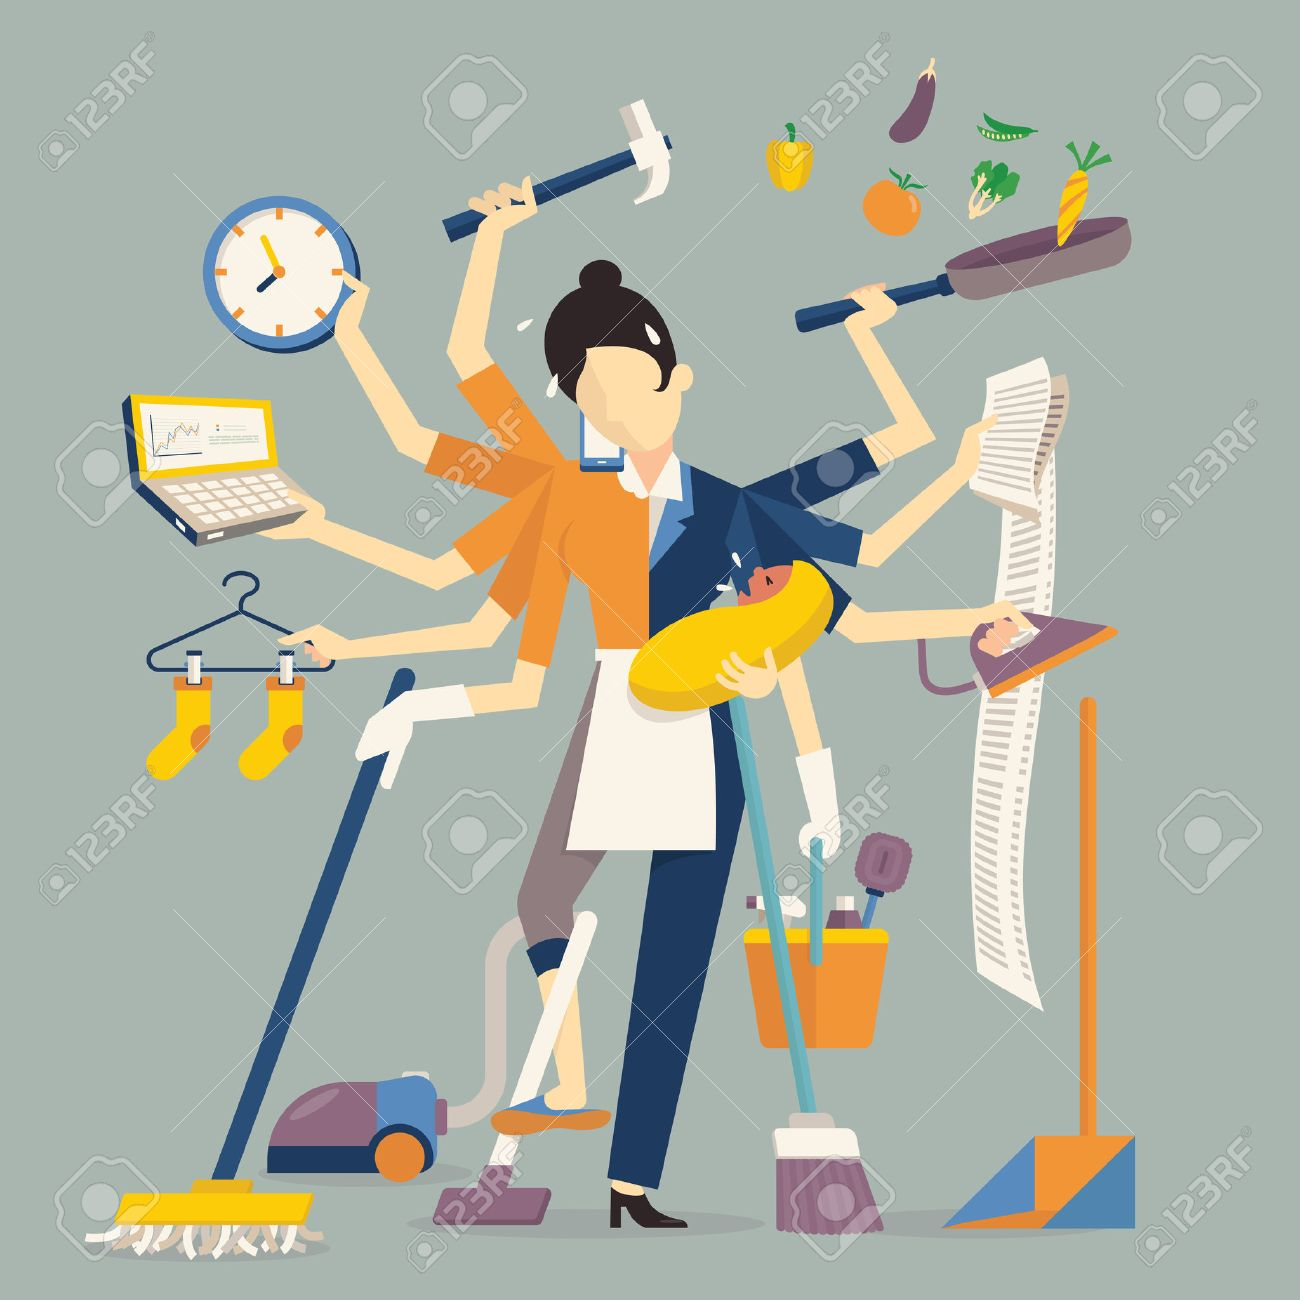 Vector illustration in super mom concept, many hands working with very busy business and housework part, feeding baby, cleaning house, cooking, doing washing, working with laptop. Flat design. - 44708423